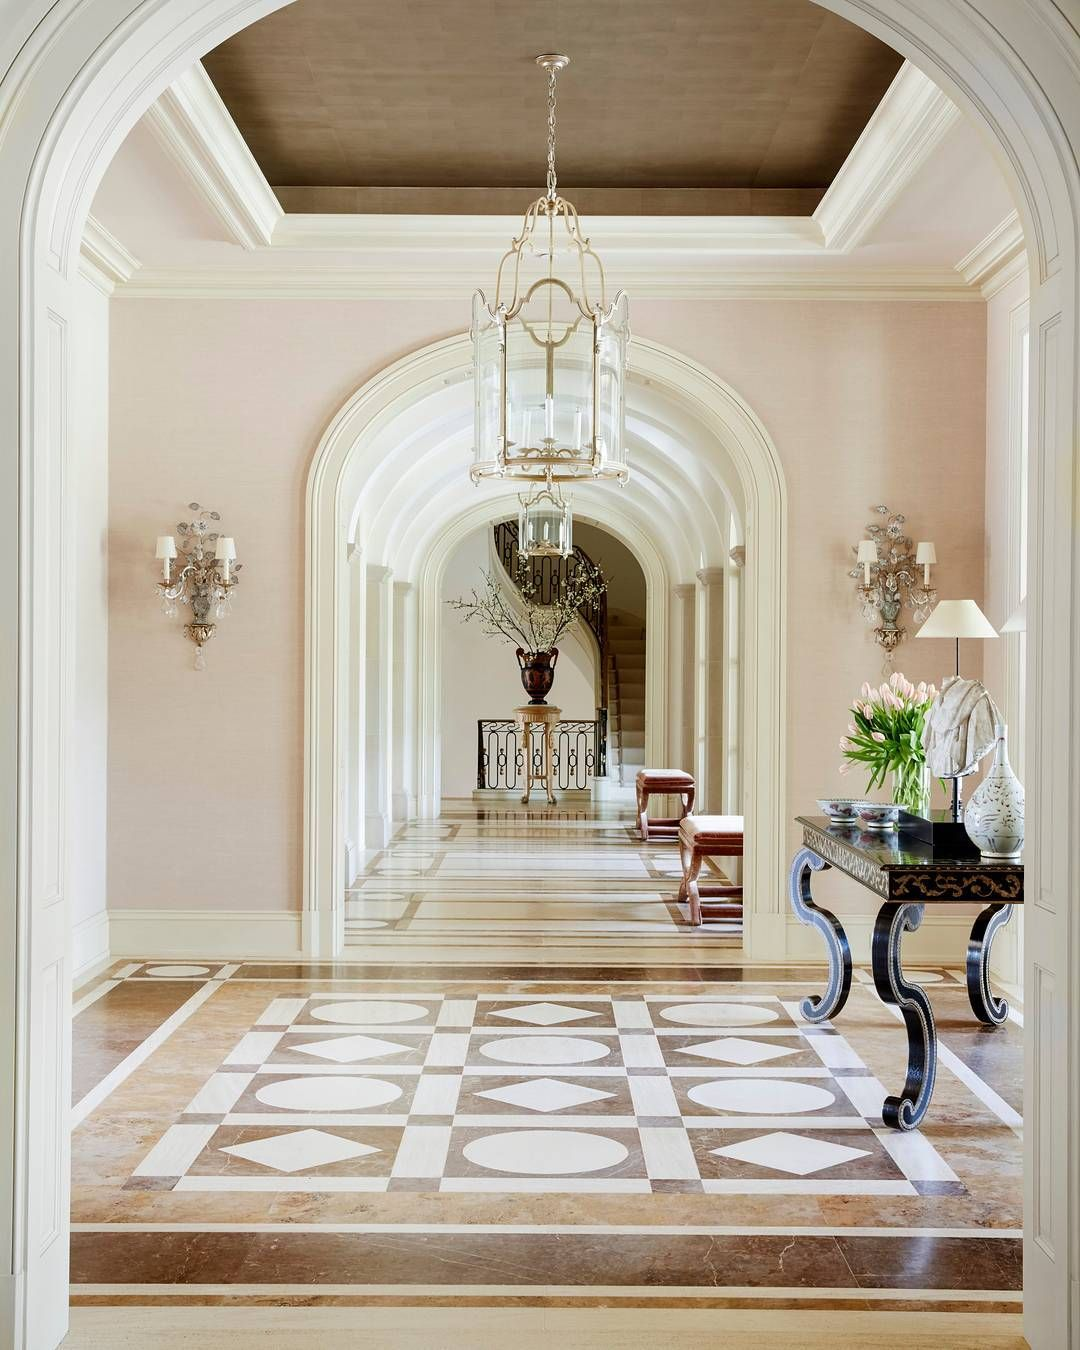 J Randall Powers Interior Design: Nothing Like A Good Entrance.